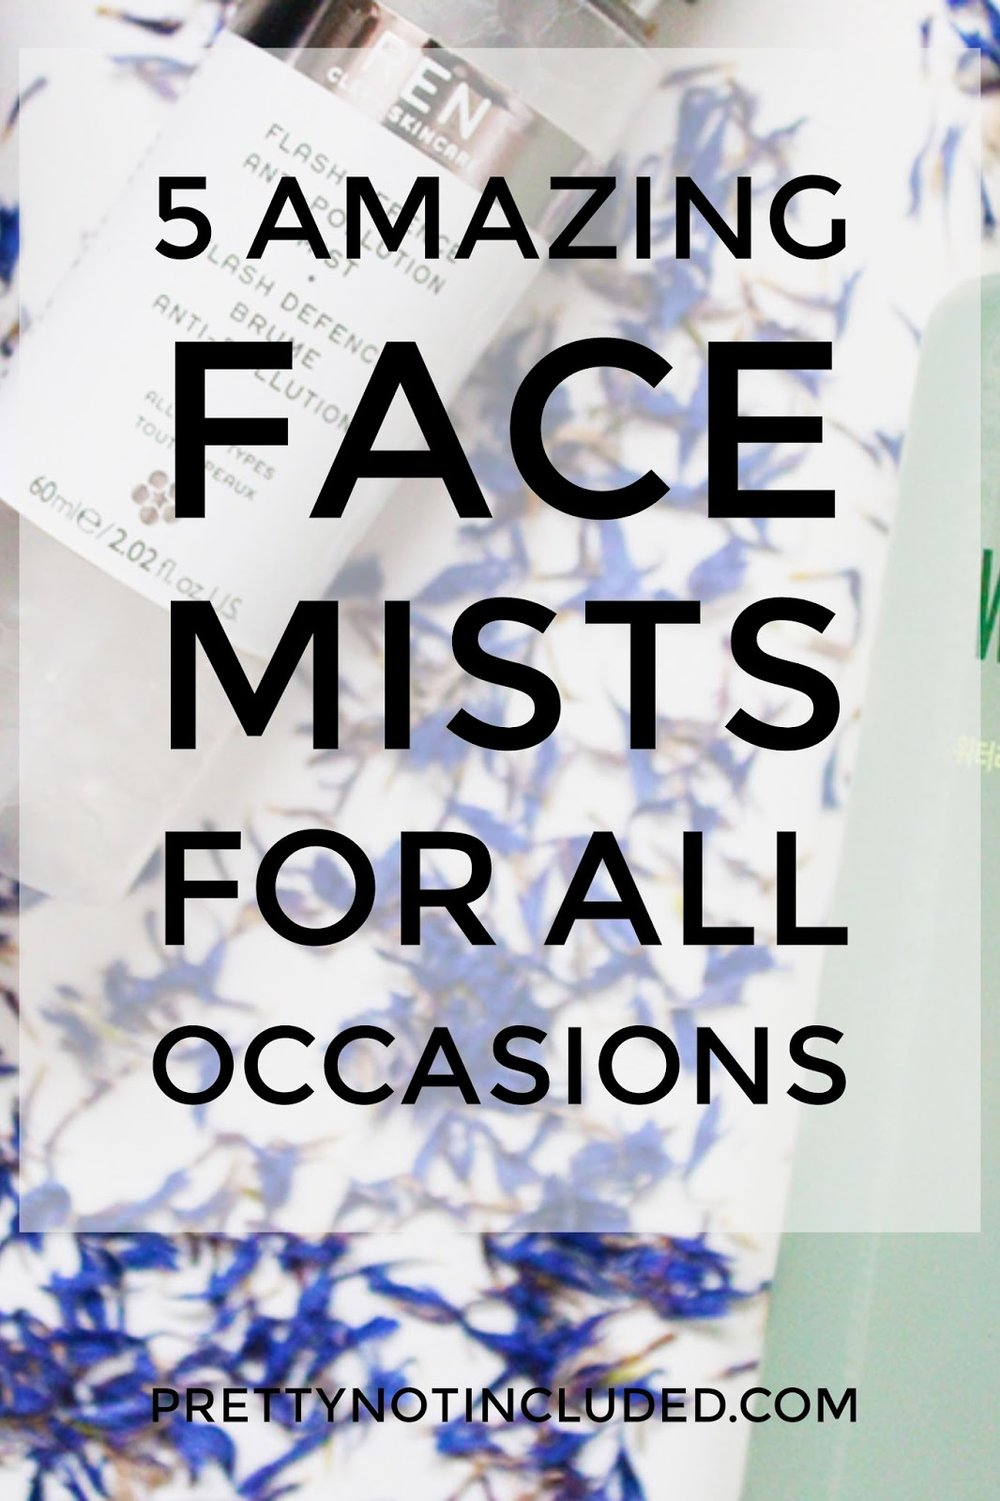 Best Face Mists